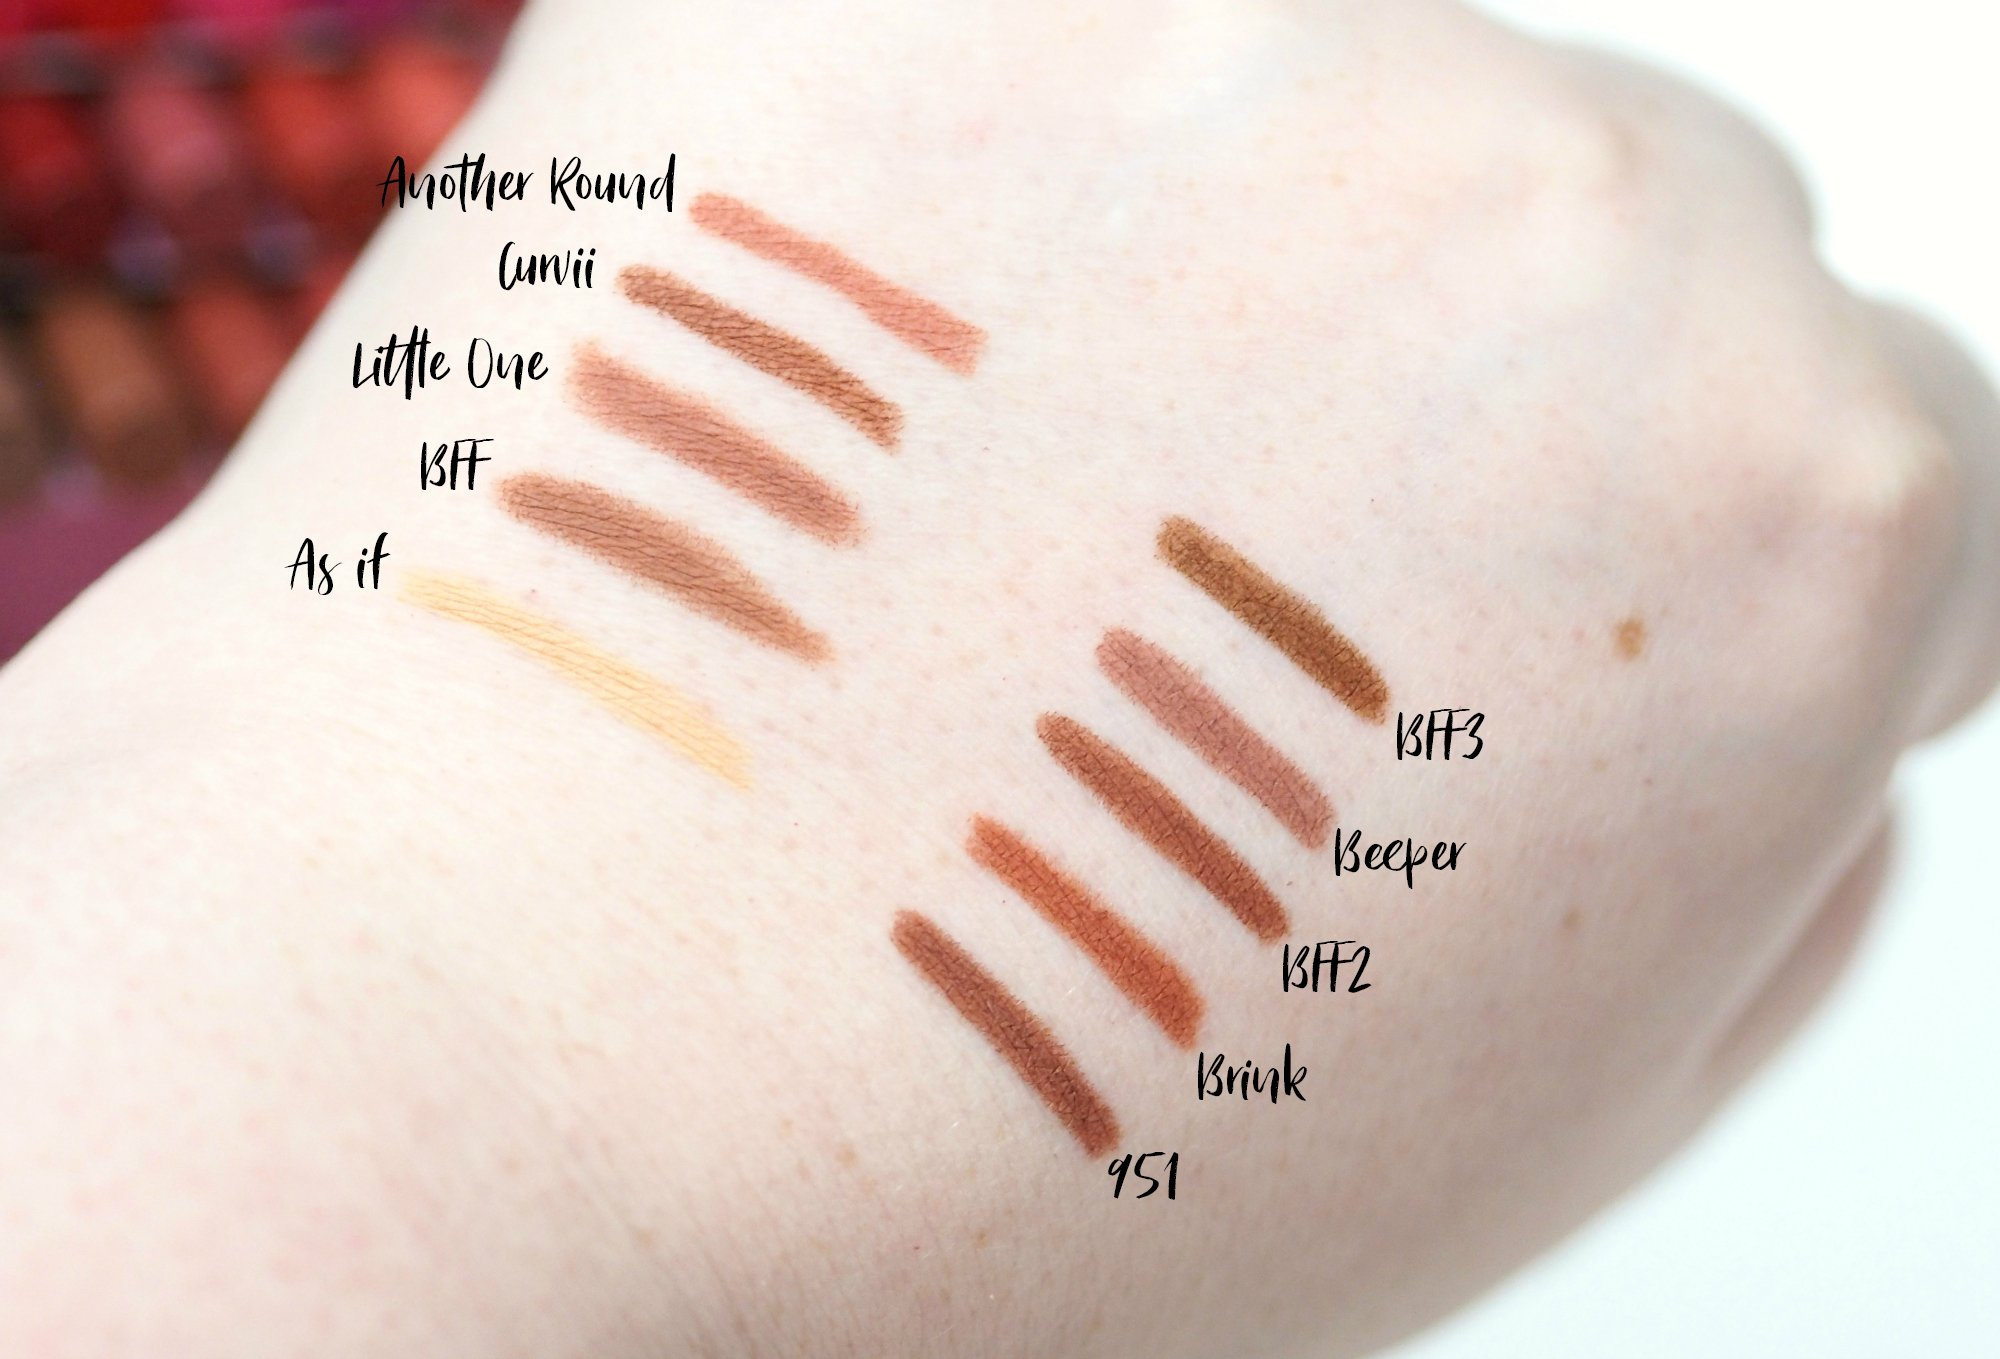 ColourPop Lippie Pencil Collection Review and Swatches - All 40 Shades